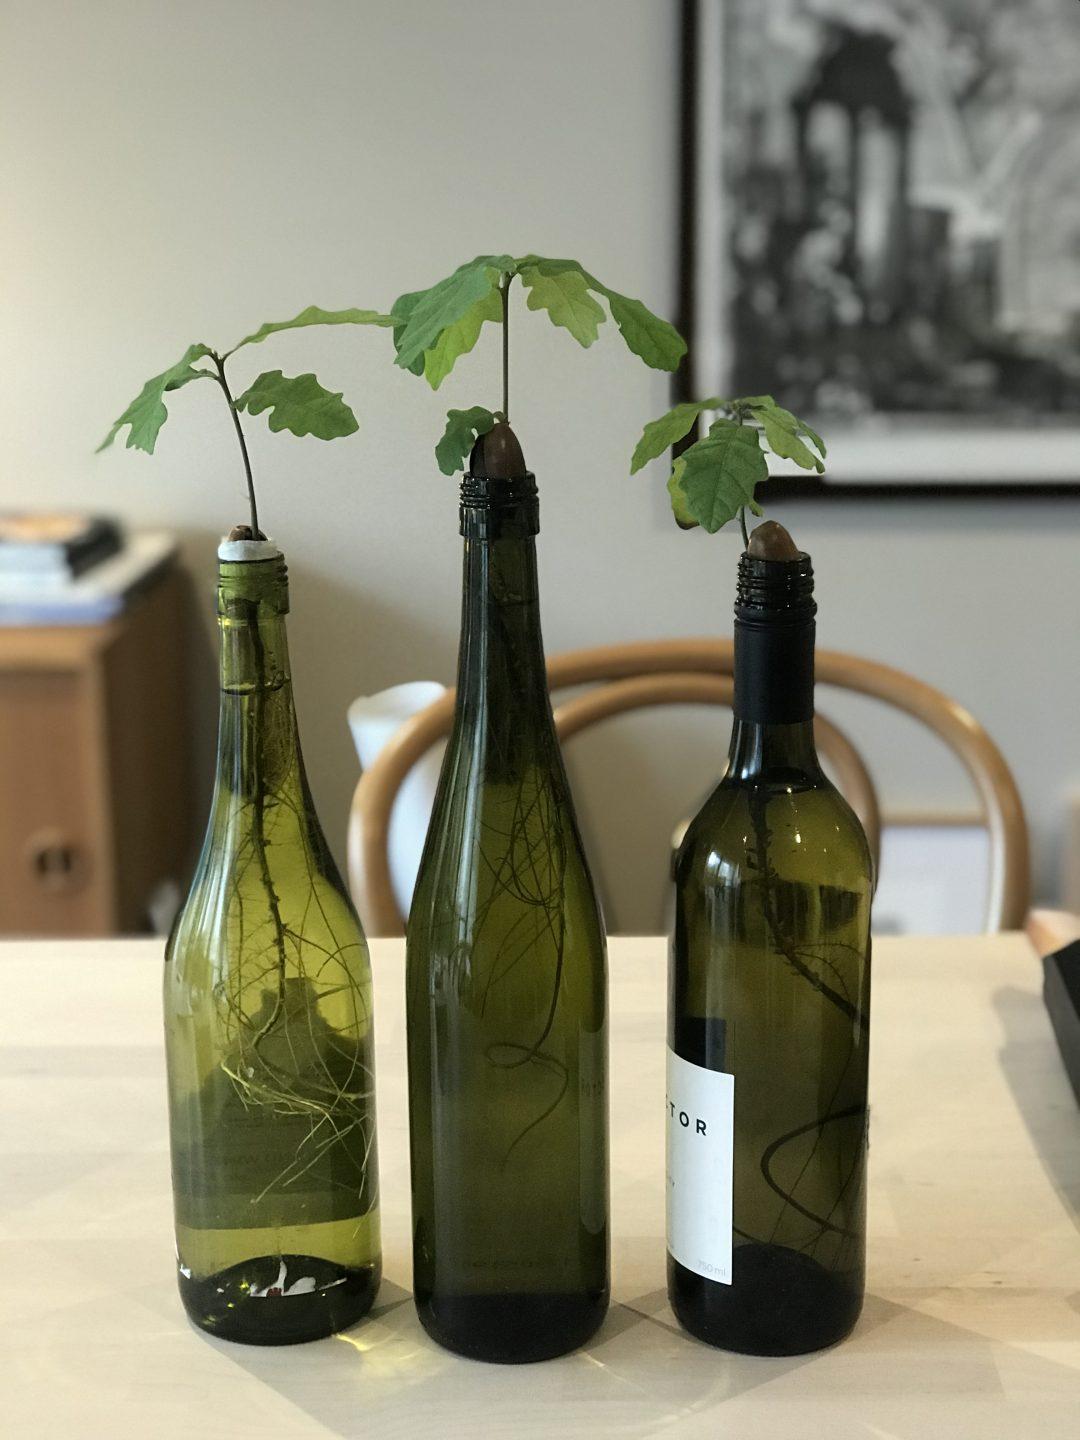 Three sprouting acorns in green glass bottles, in a home interior